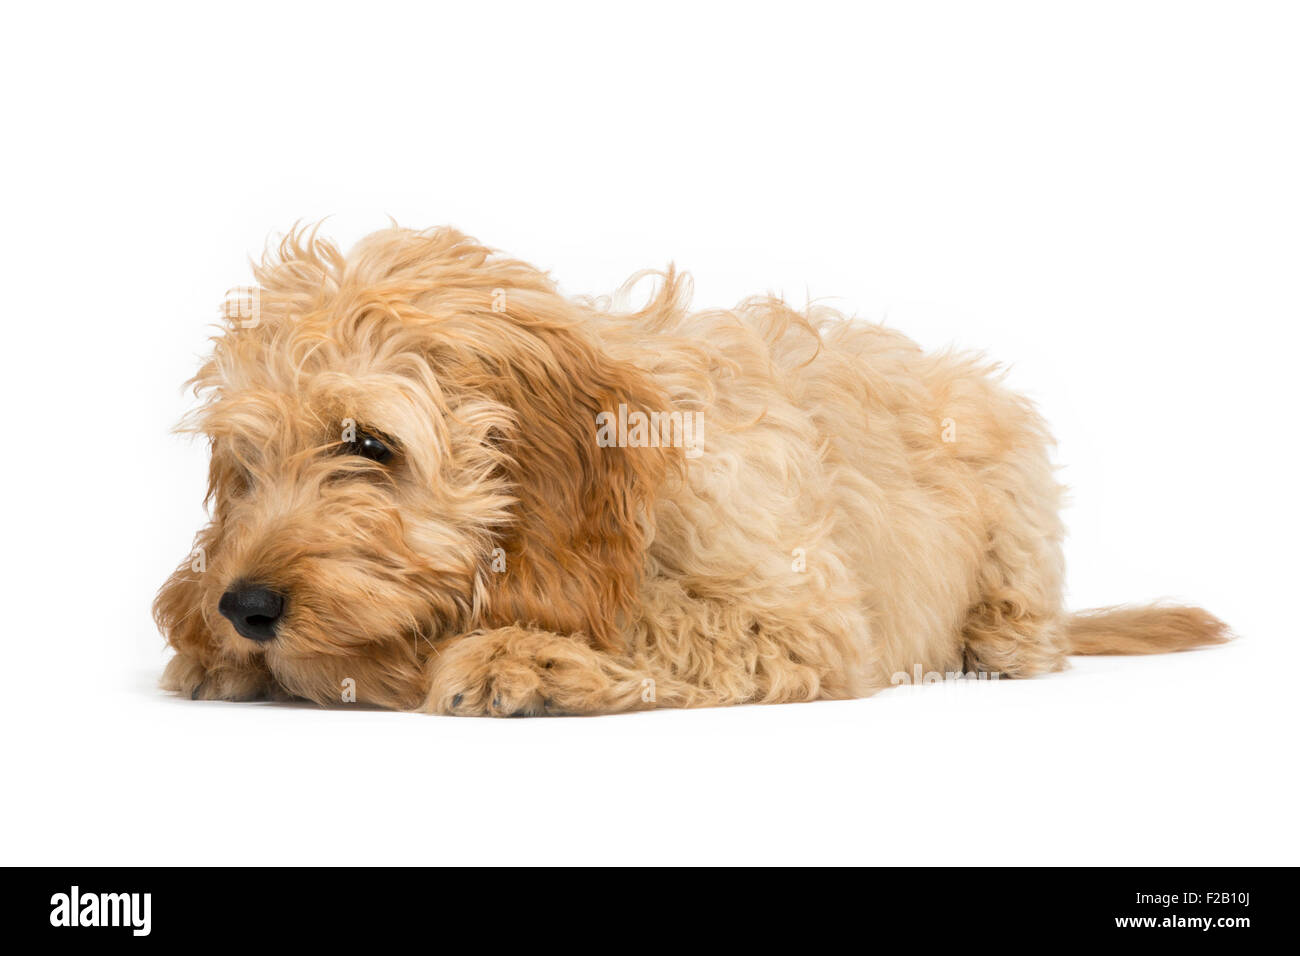 Four month old Cockapoo puppy laying with white background - Stock Image